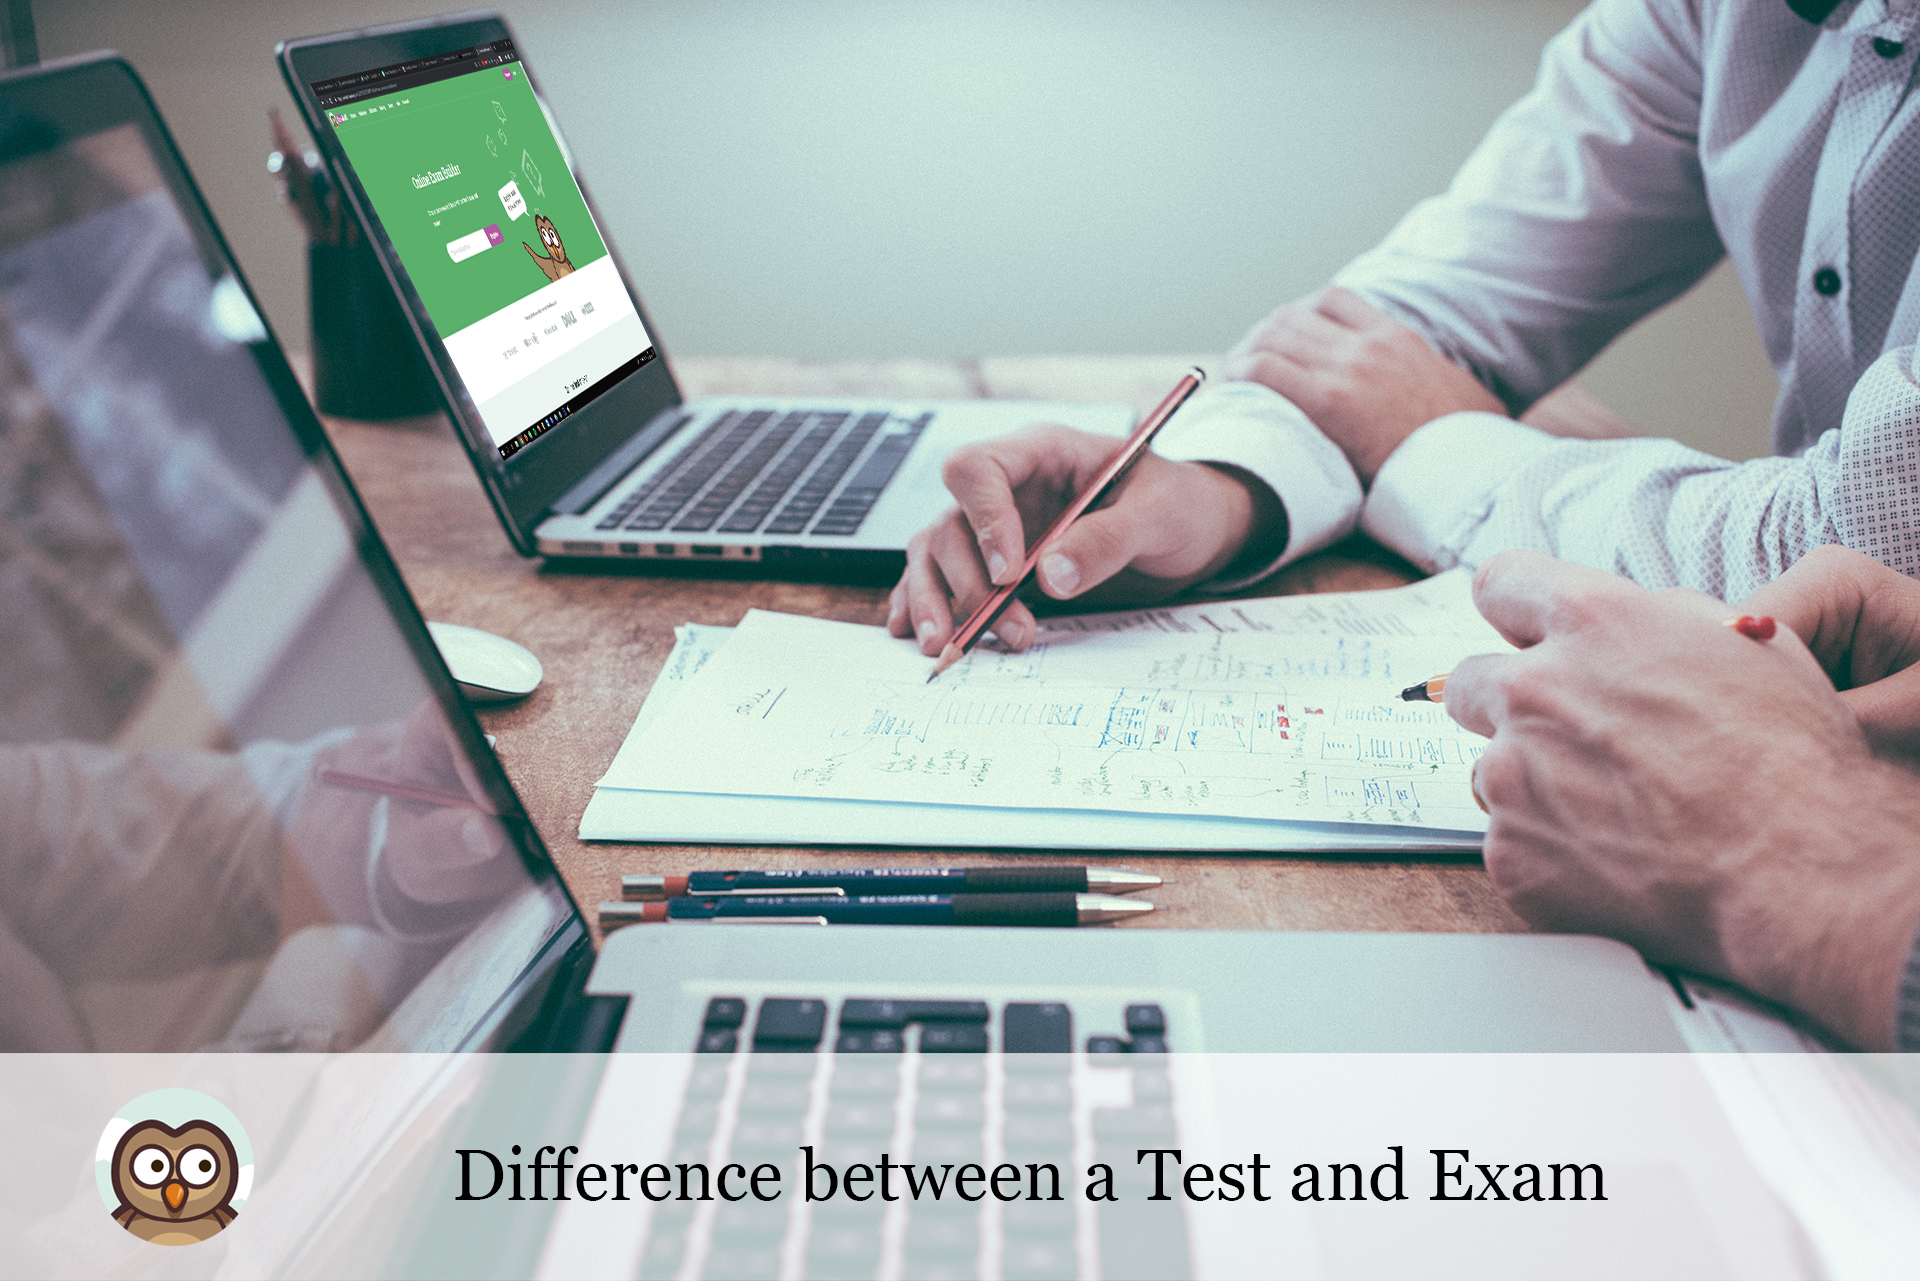 Difference between a test and exam